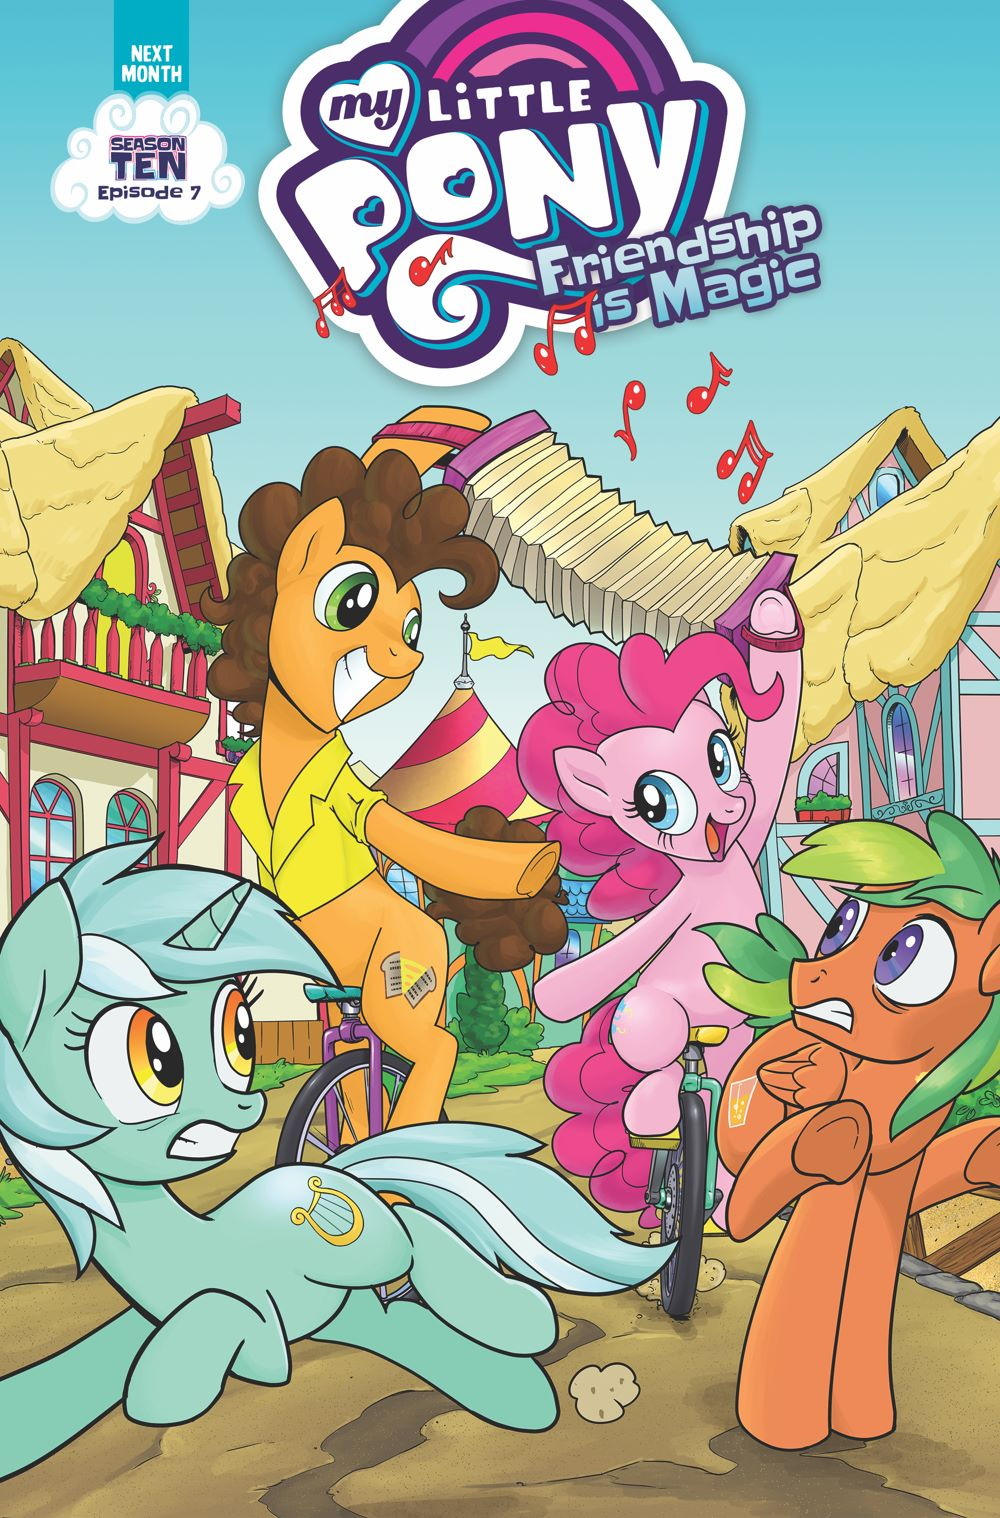 MLP94-next ComicList Previews: MY LITTLE PONY FRIENDSHIP IS MAGIC #94